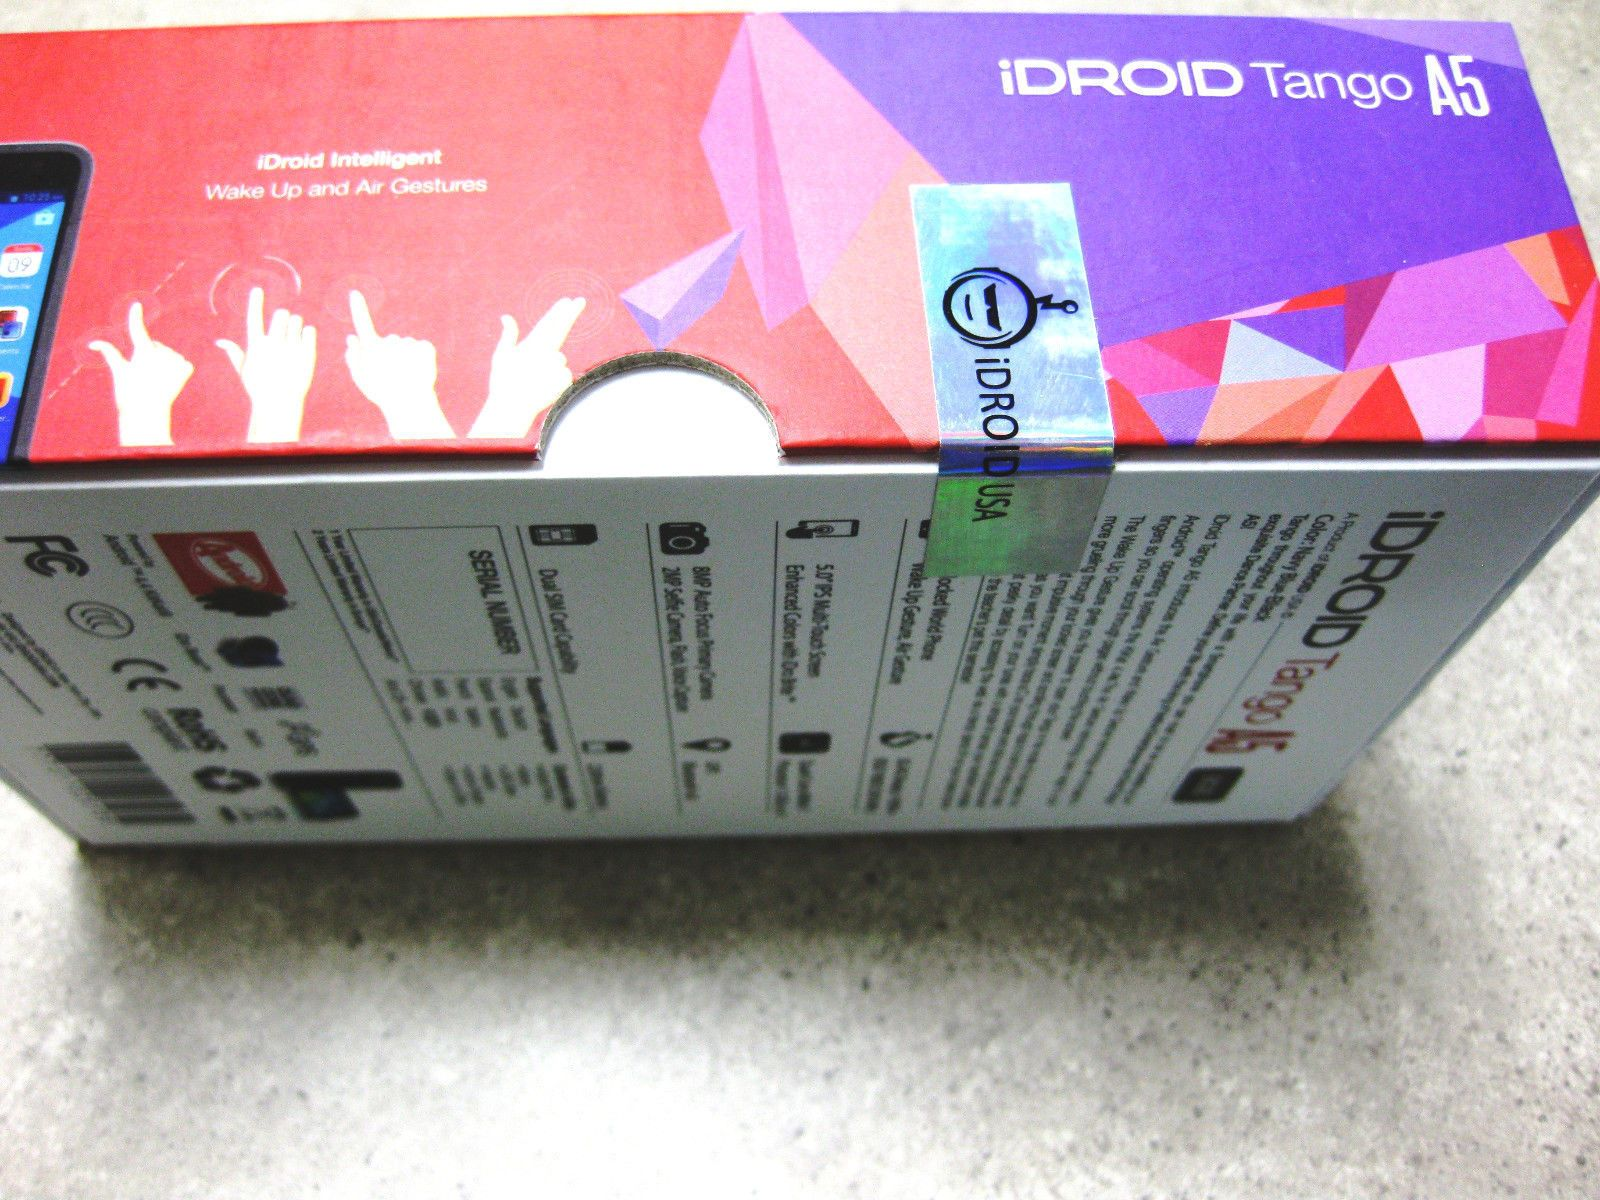 Packing box android smartphone smartphone tango